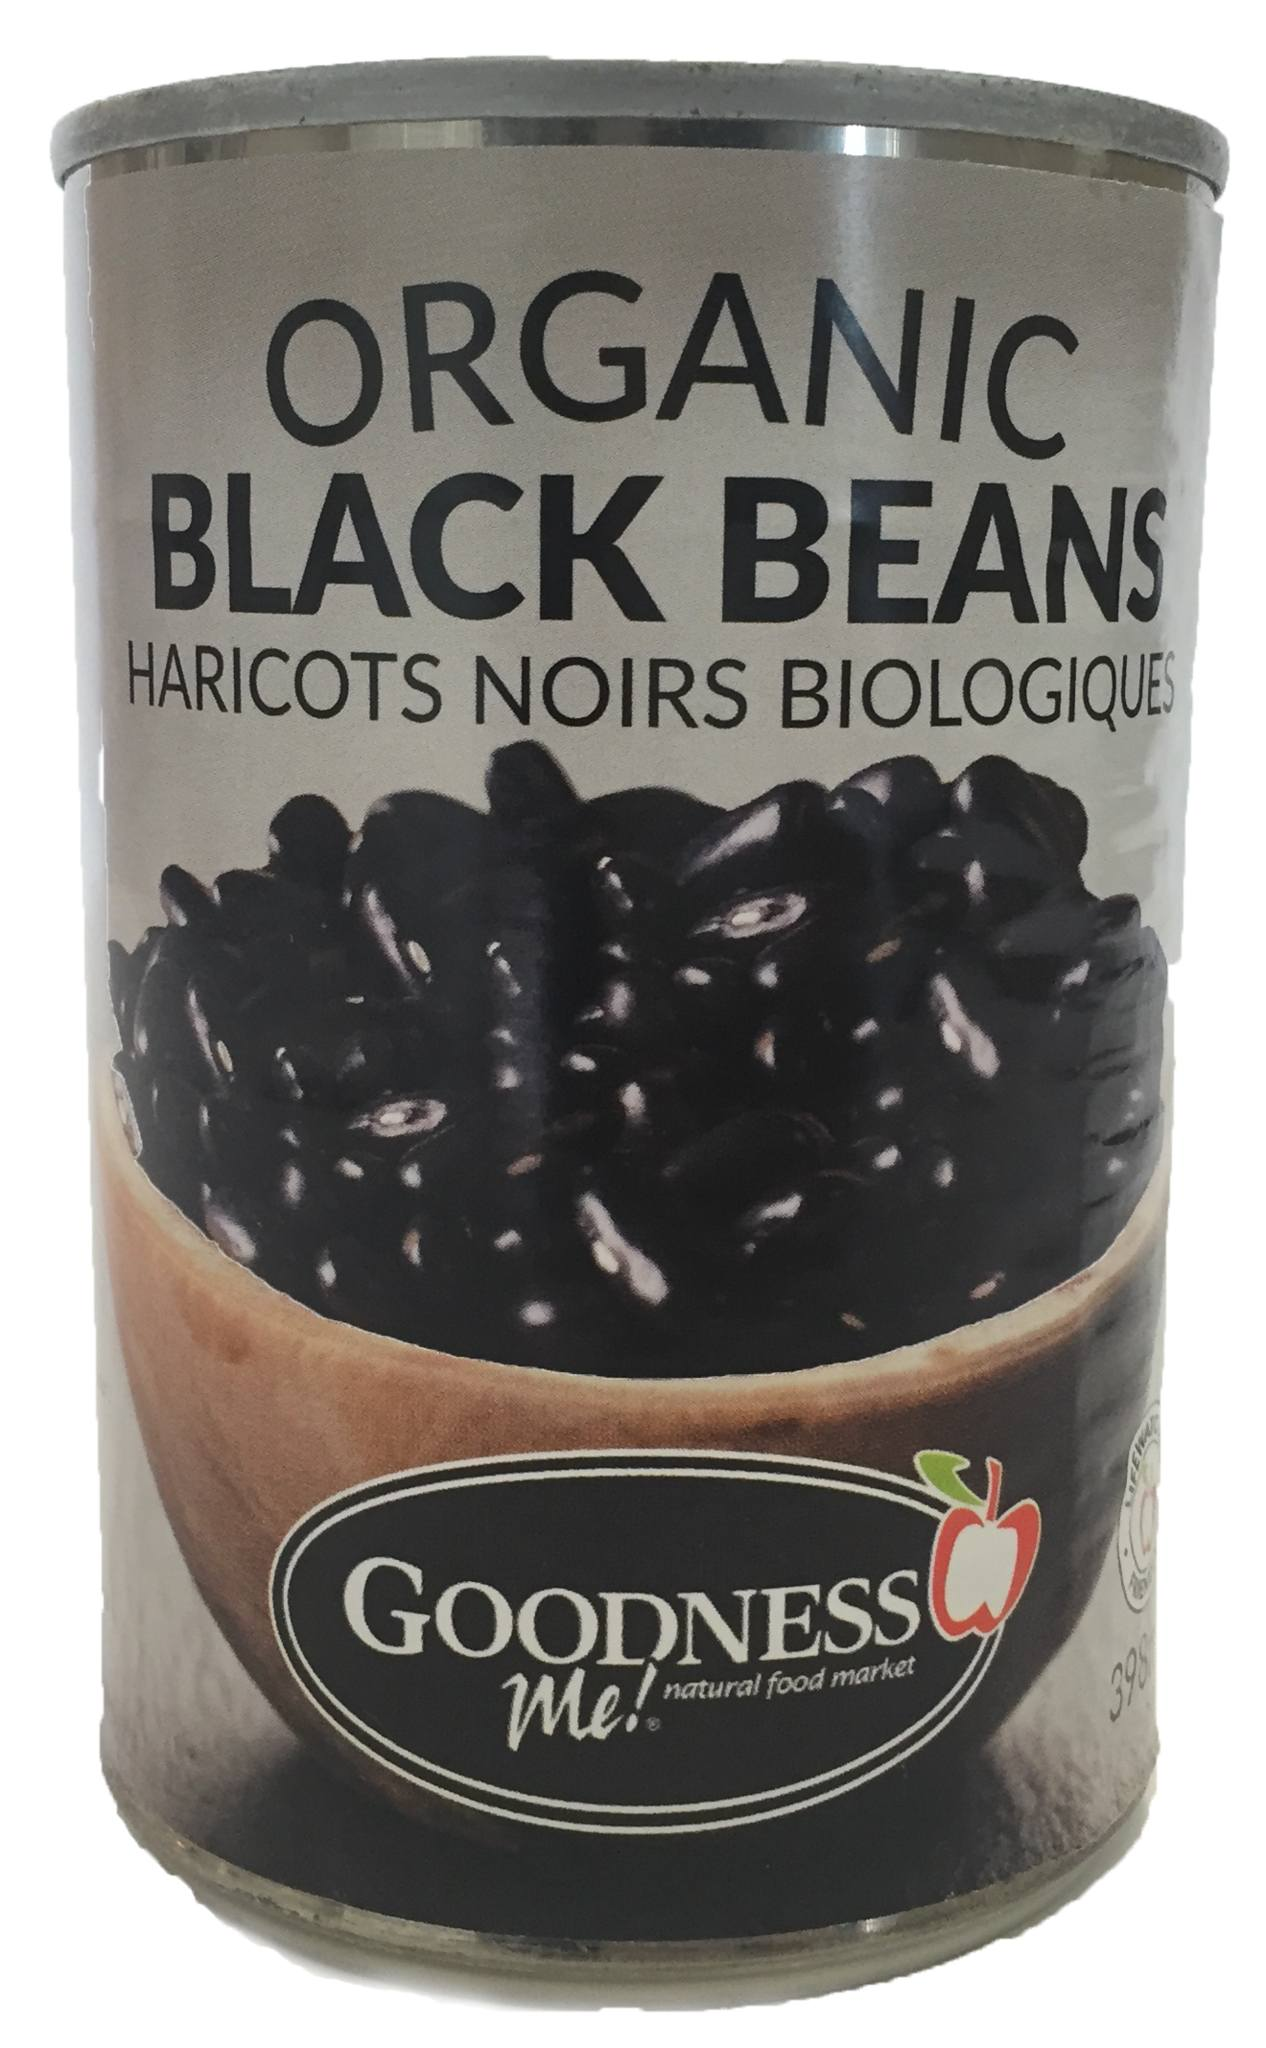 Food & Drink - Goodness Me! - Organic Black Beans, 398 Ml